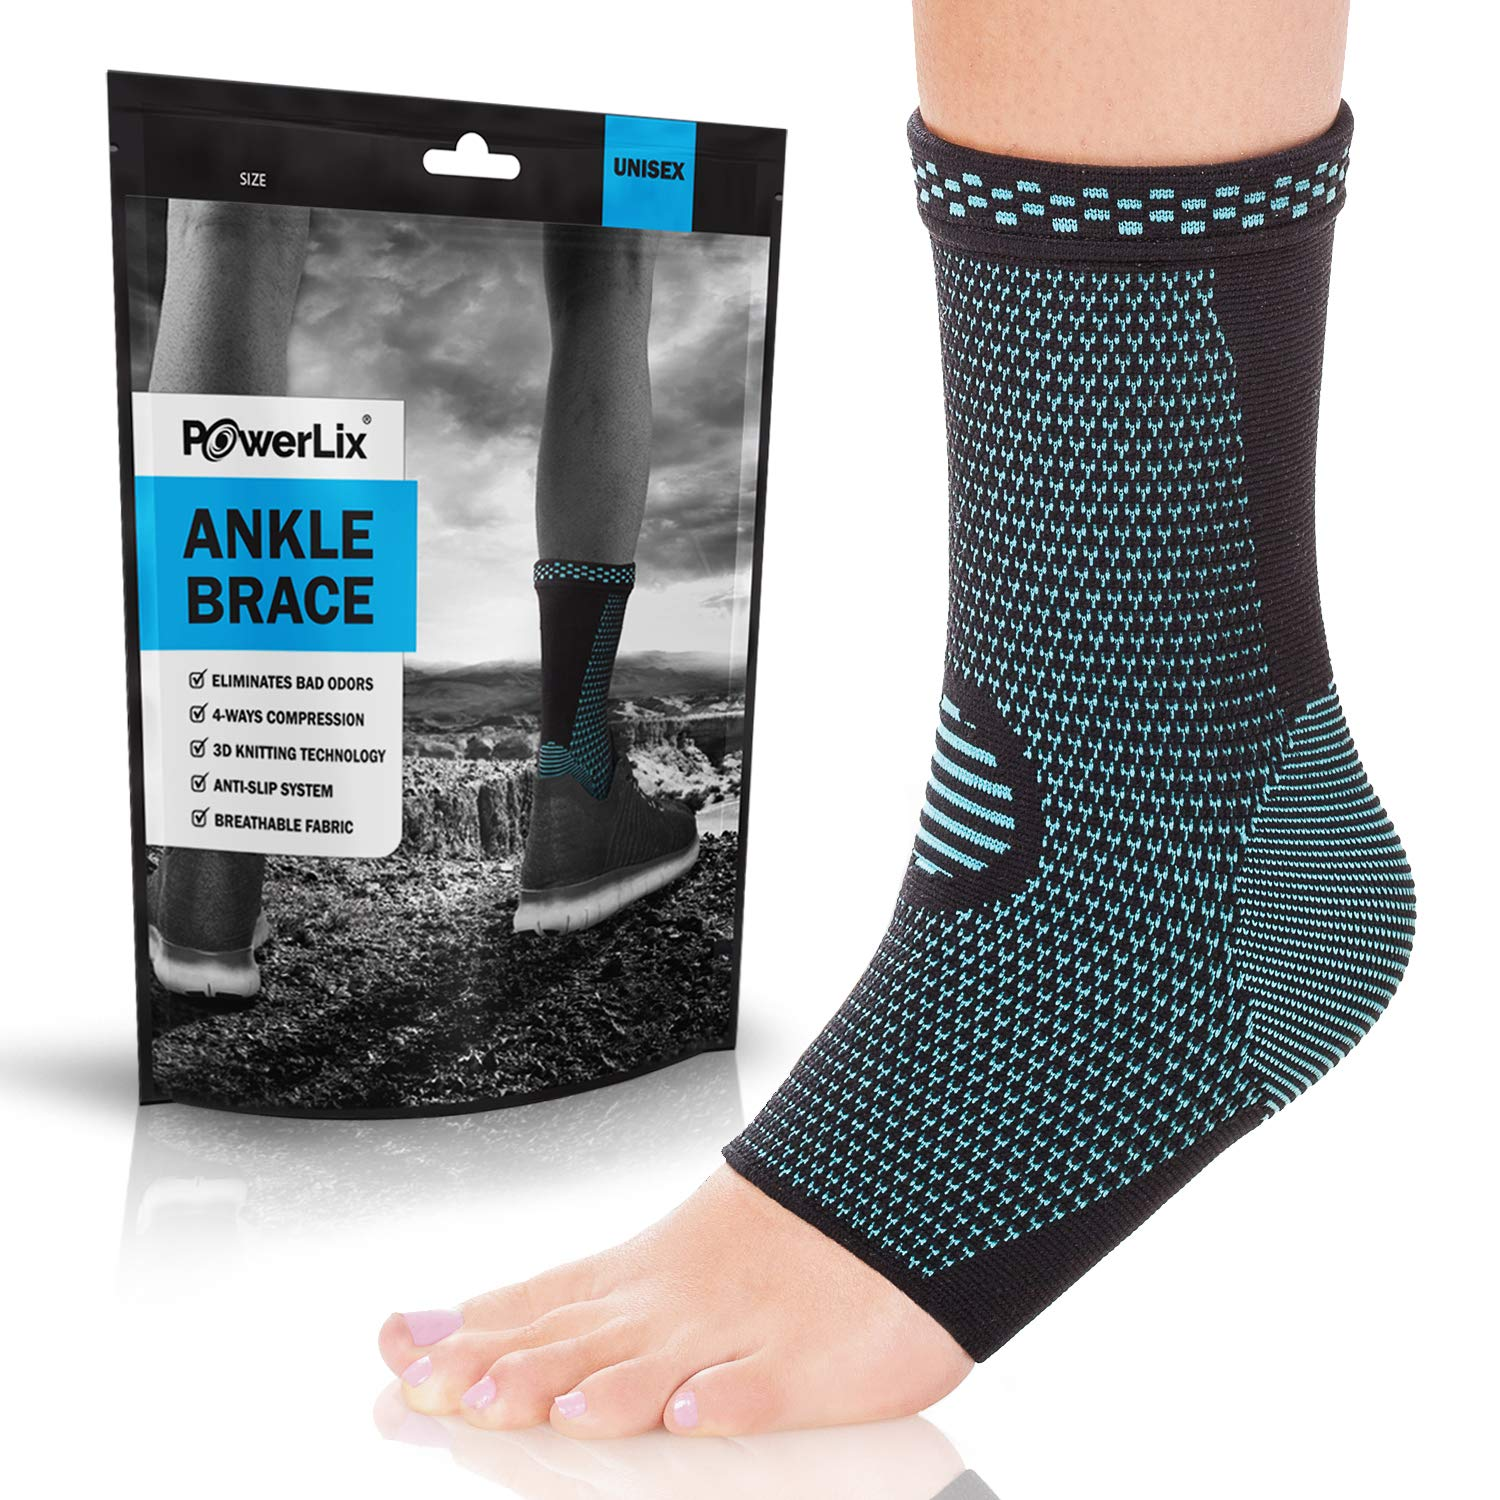 POWERLIX Ankle Brace Compression Support Sleeve (Pair) for Injury Recovery, Joint Pain and More. Plantar Fasciitis Foot Socks with Arch Support, Eases Swelling, Heel Spurs, Achilles Tendon by POWERLIX